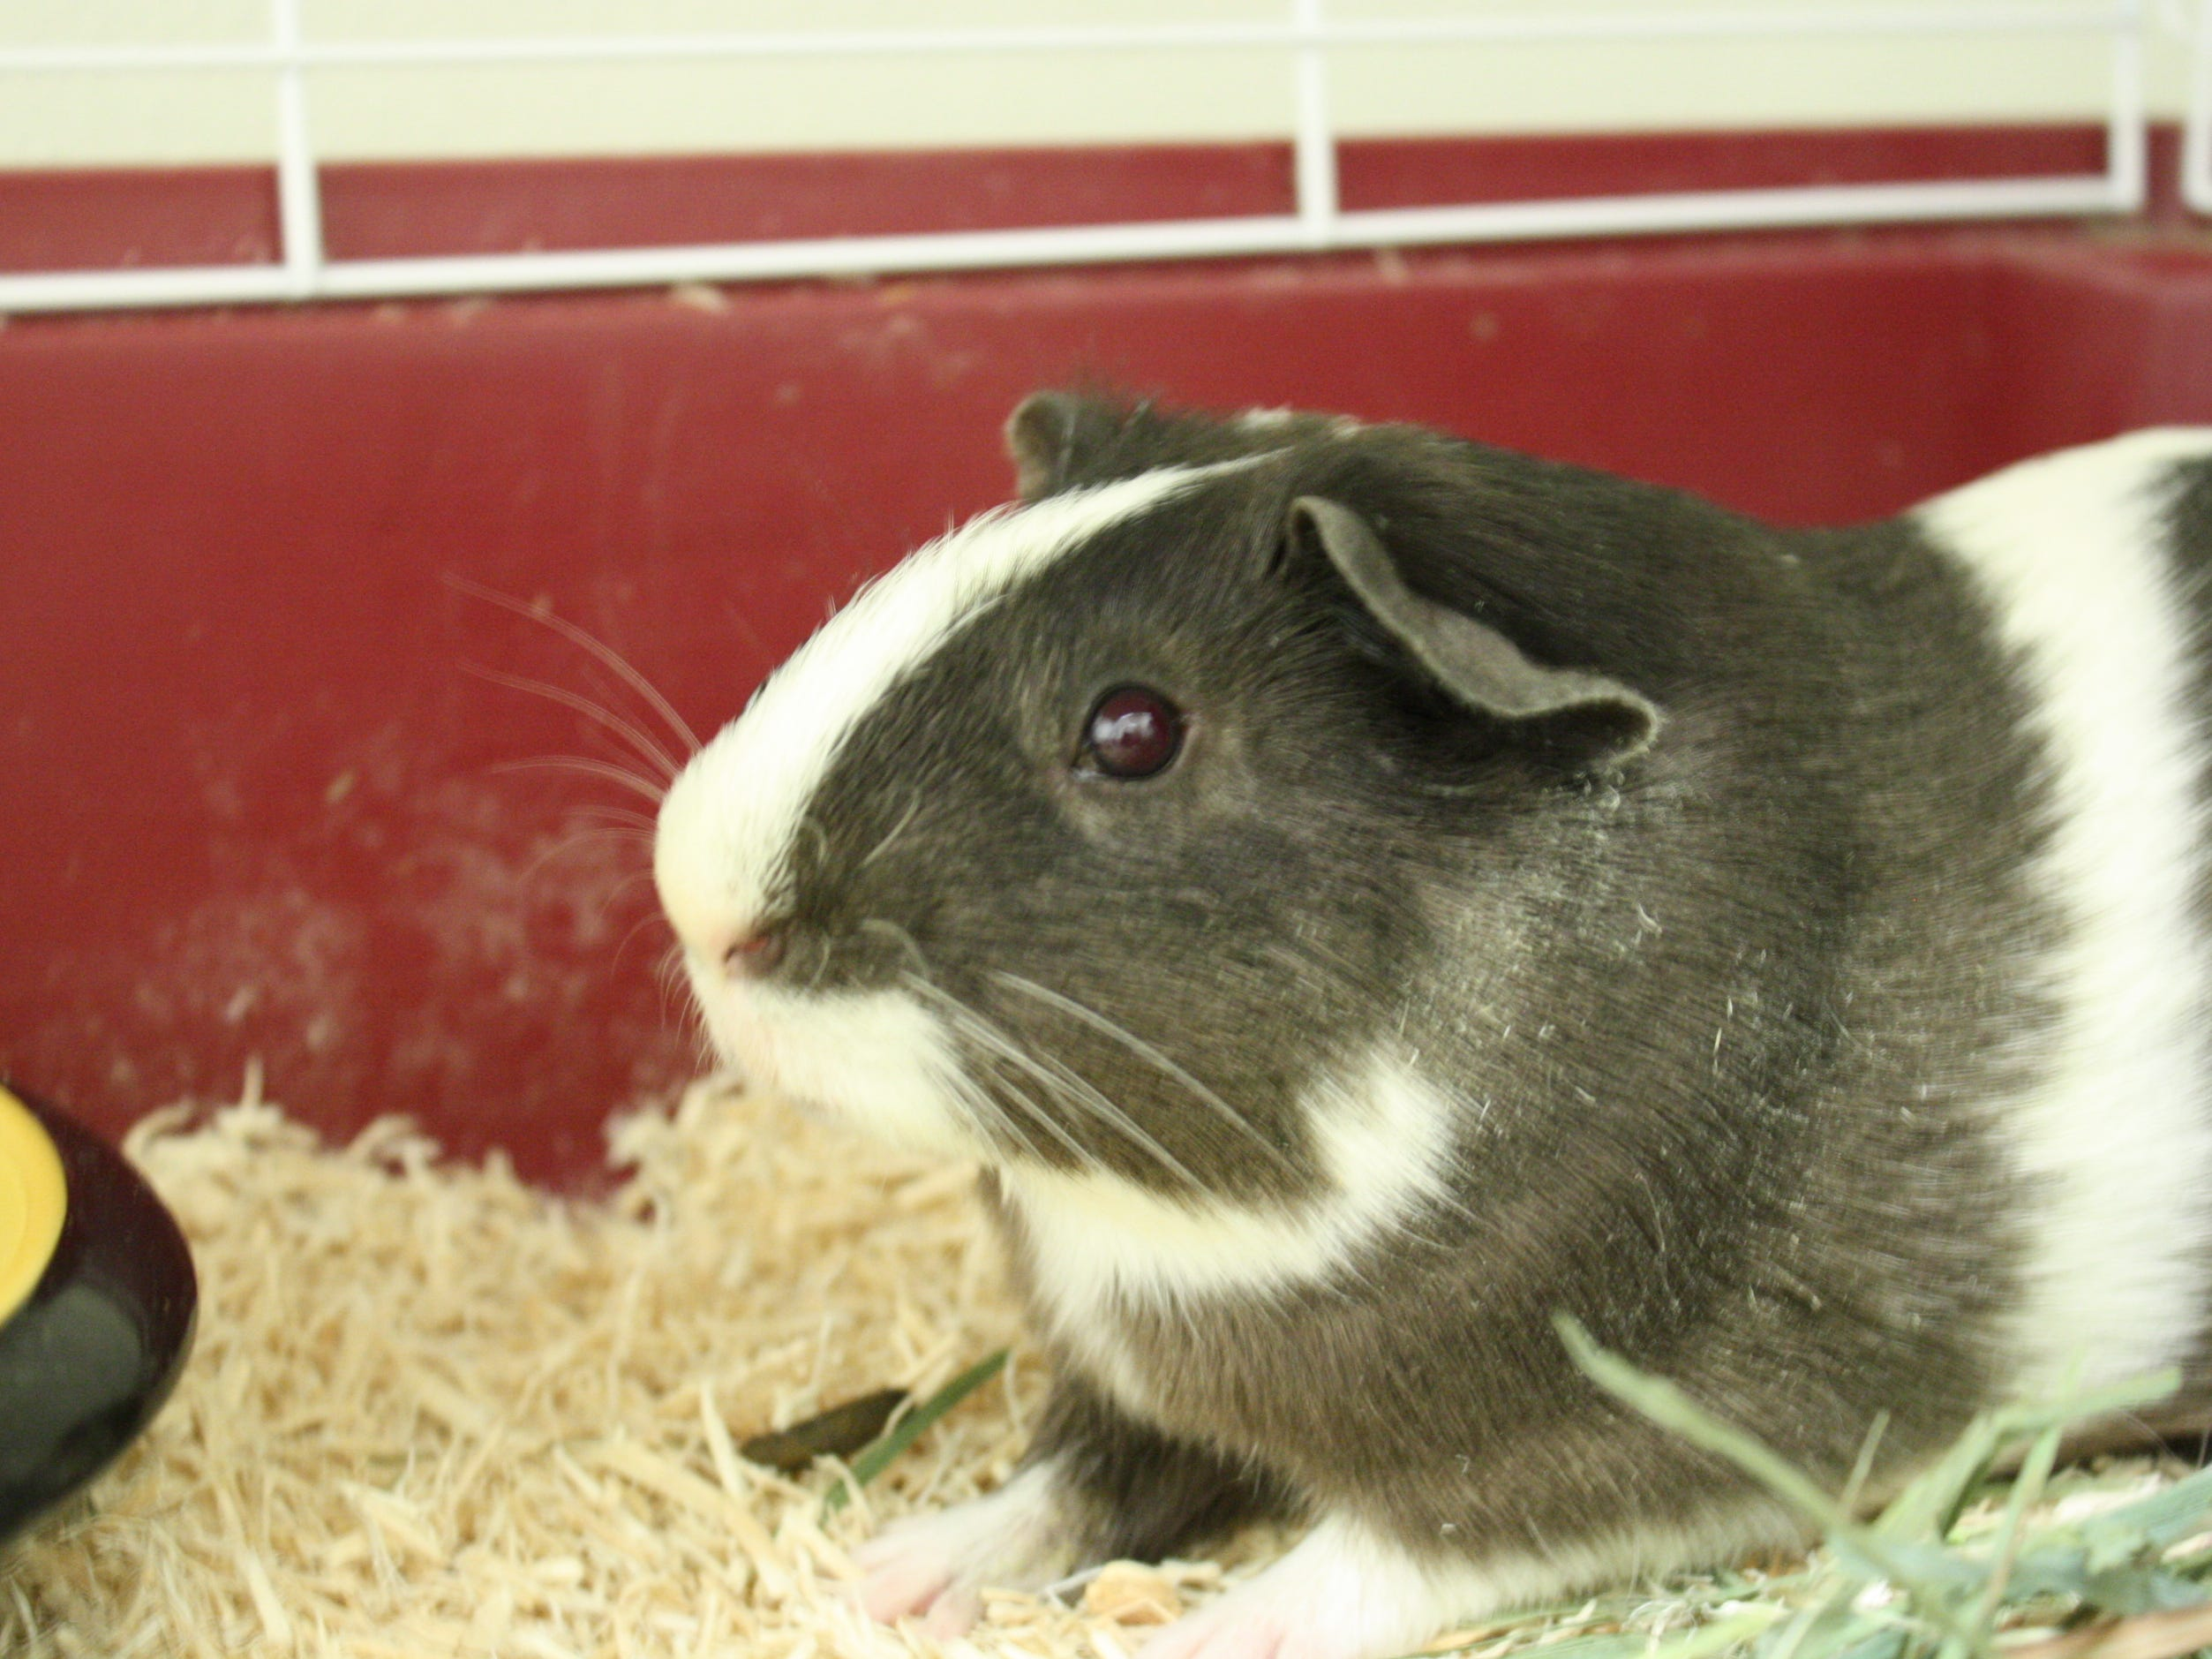 Graham Cracker, a 5-month-old Guinea Pig, is outgoing and would like a home with a buddy.